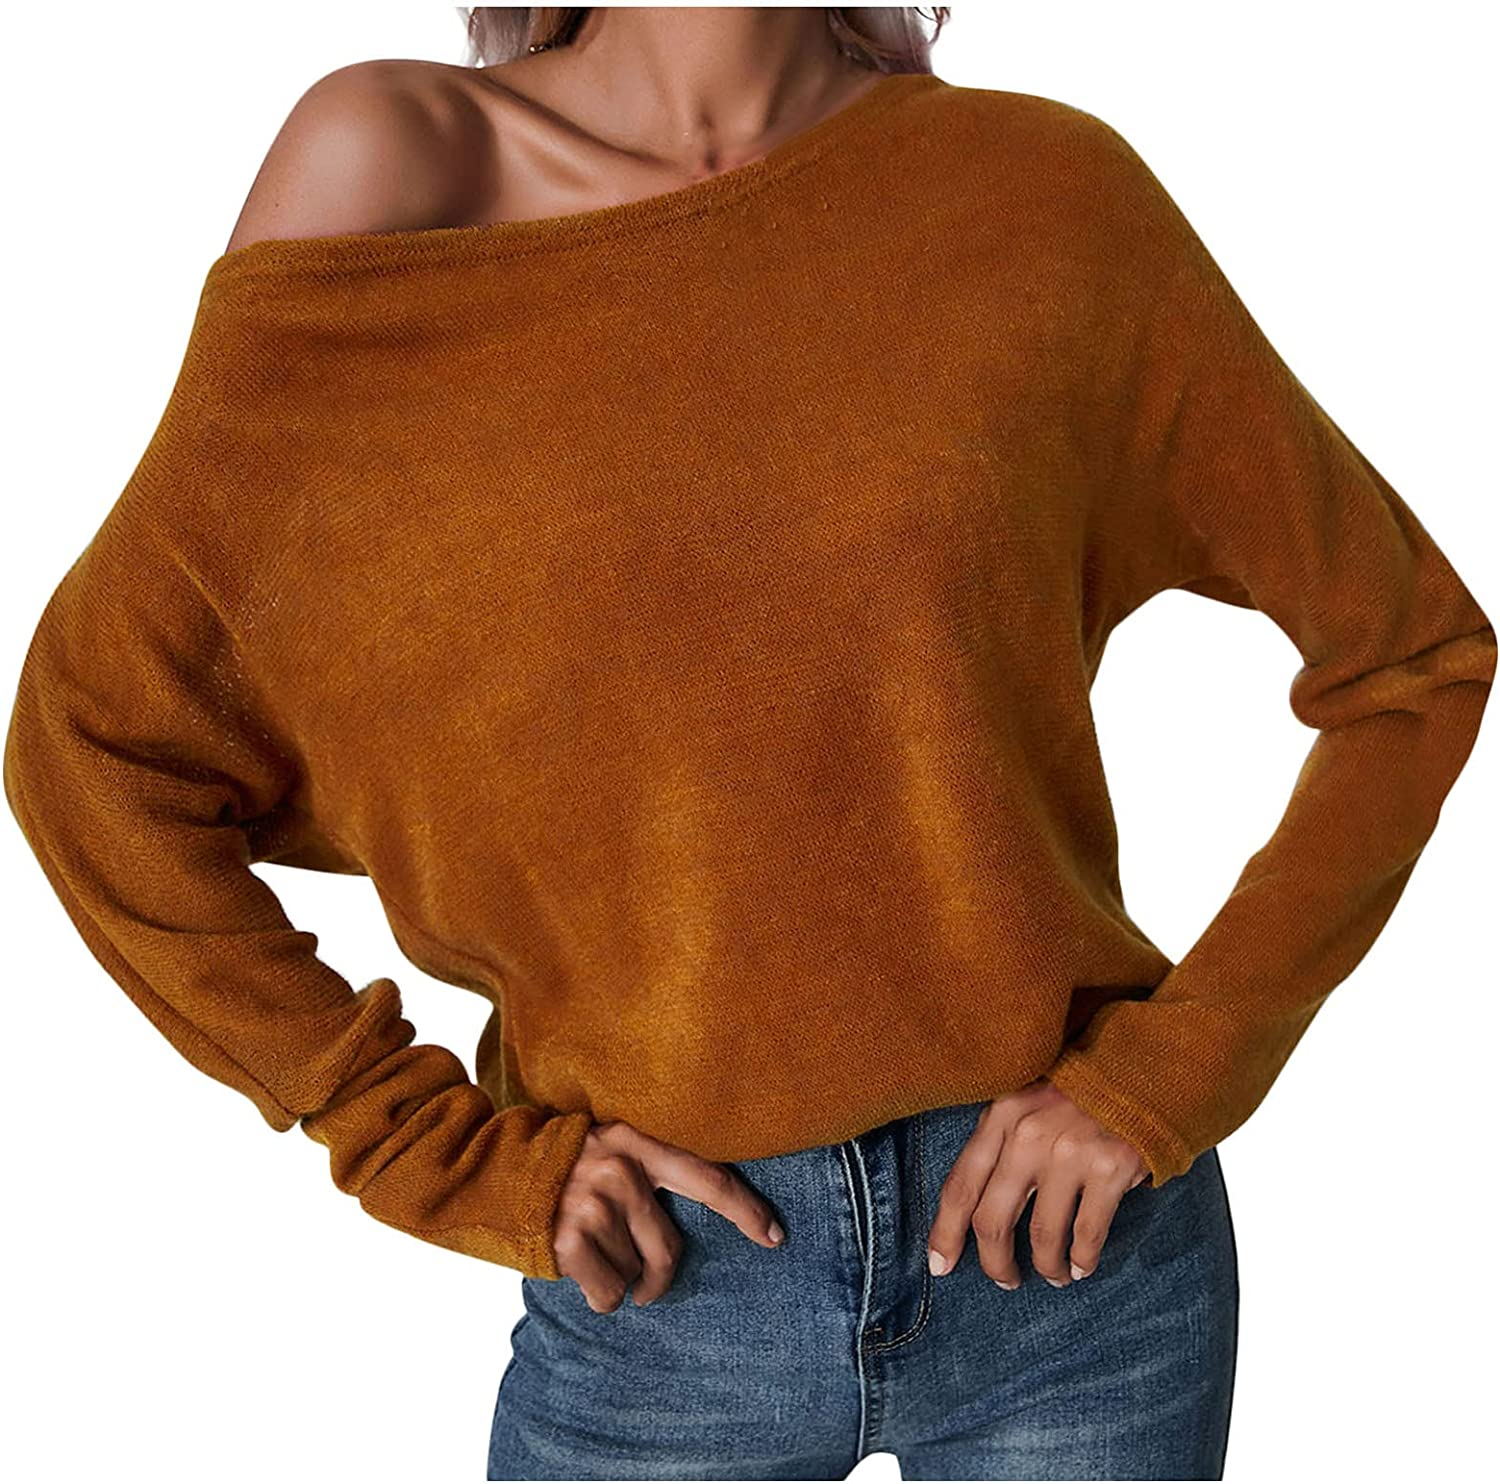 Womens Boat Neck Sweater Sexy Cold Shouldered Long Sleeved Jumper Tops Casual Elegant Solid Color Relaxed Fit Pullovers